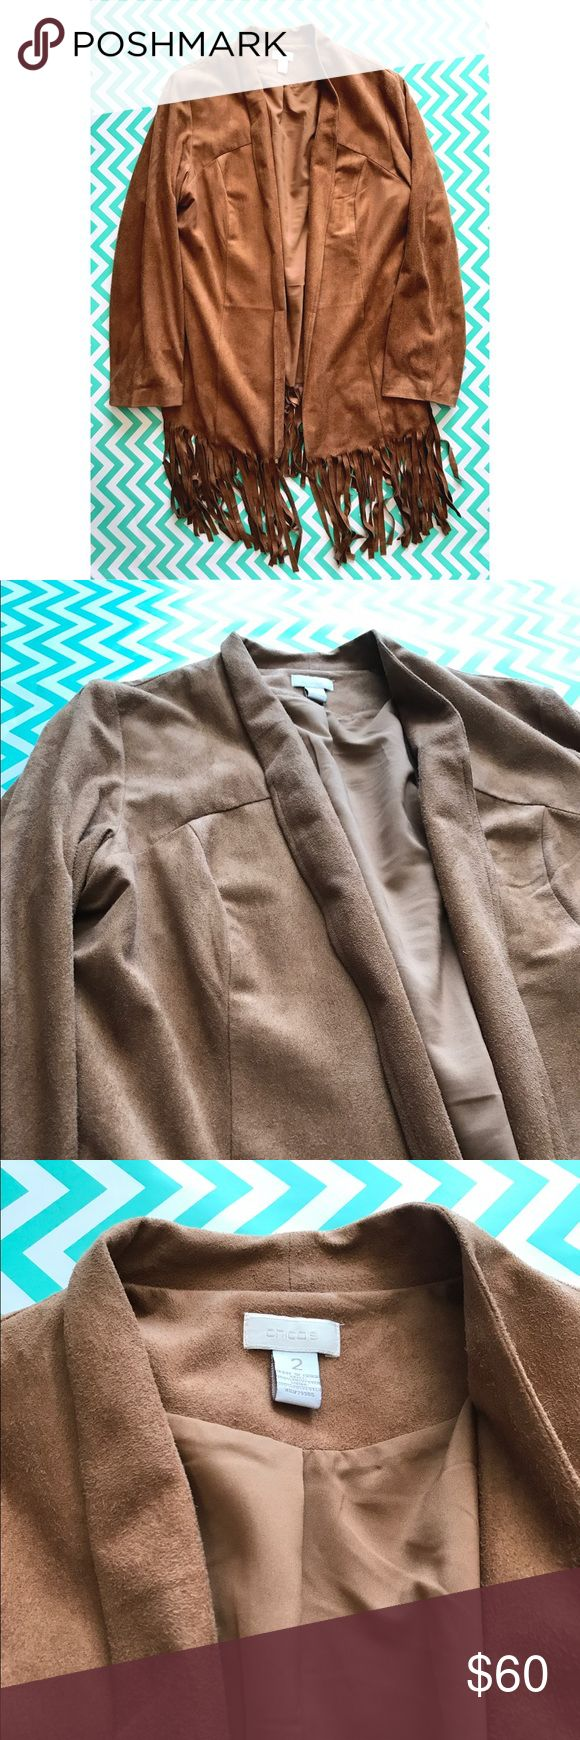 Fringe suede jacket Beautiful Chicos fringe suede jacket. Chicos size 2 which is about a 12 US size. Used like new, only worn three times in new condition. Chico's Jackets & Coats